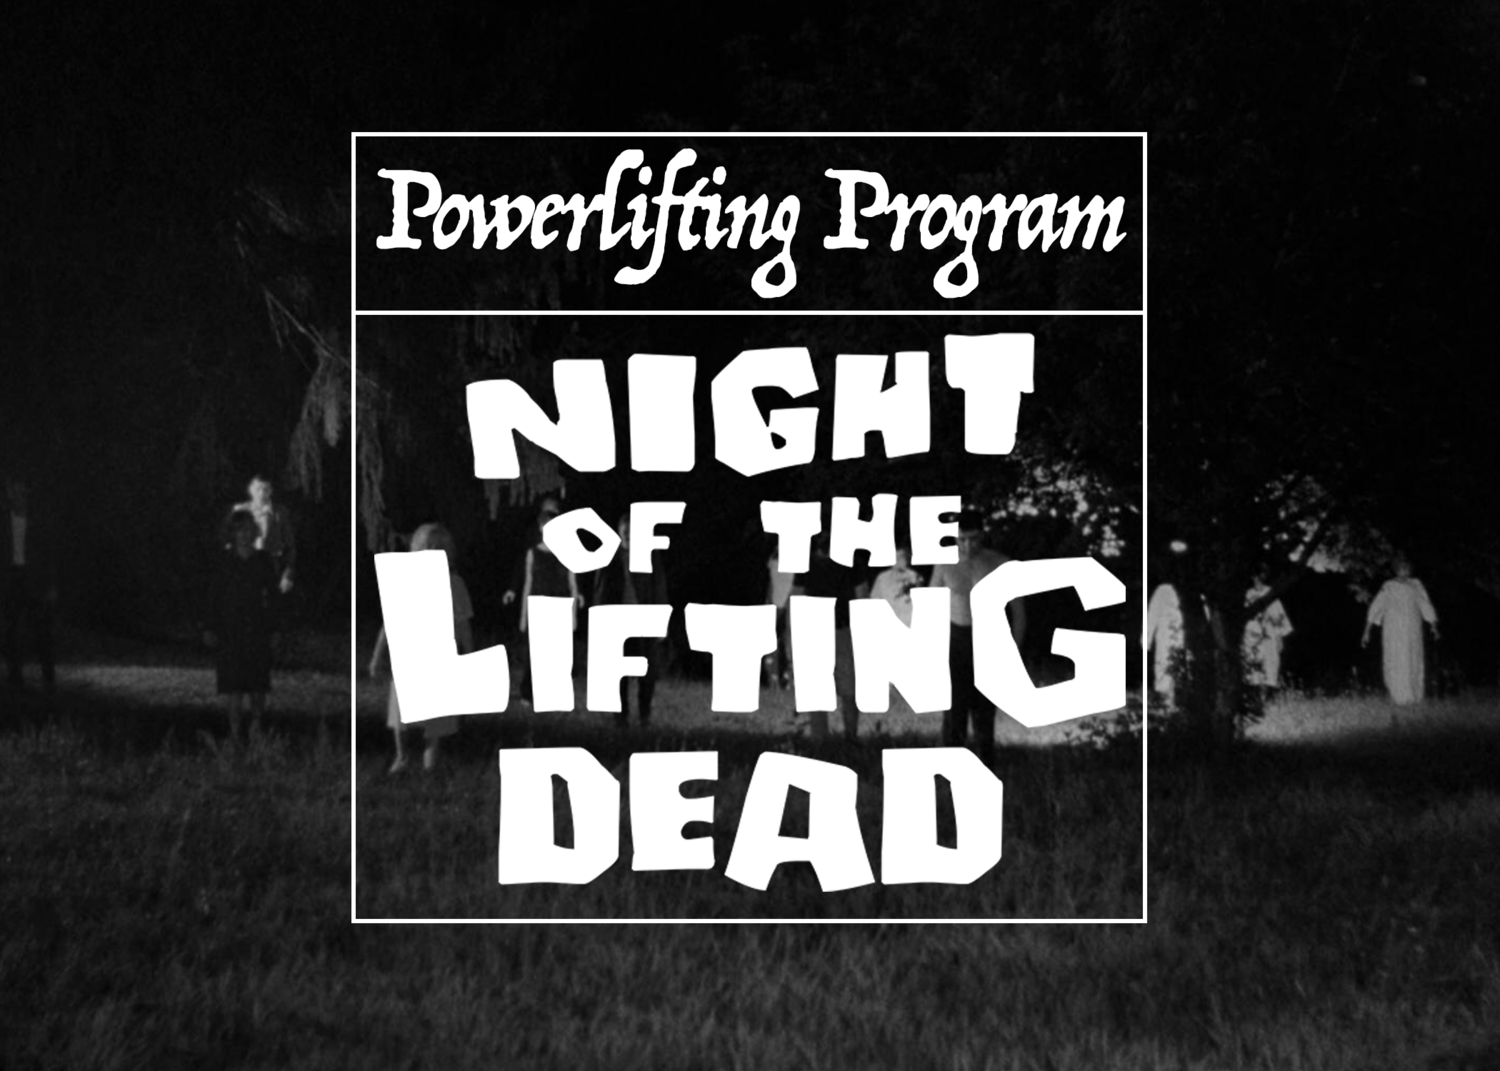 Night of the Lifting Dead - Powerlifting Program